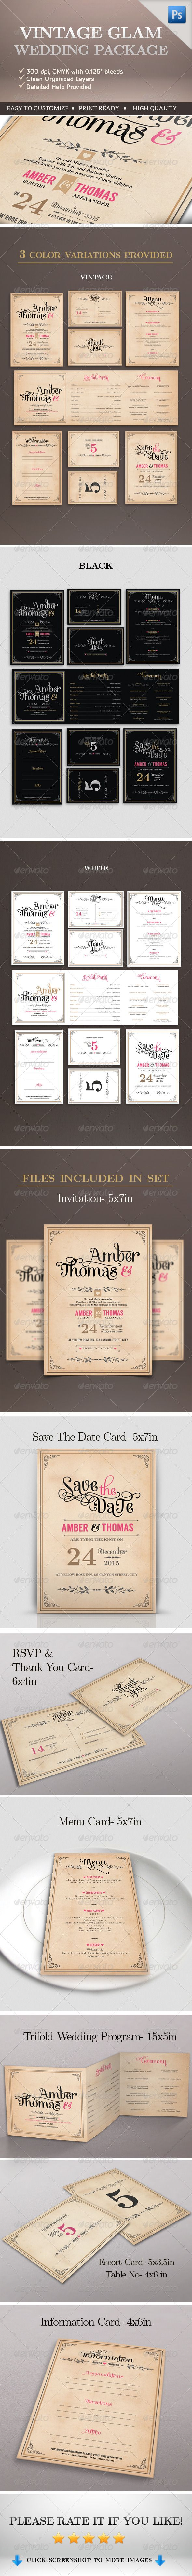 free wedding invitation psd%0A Vintage Glam Wedding Package  Invitation TemplatesPsd